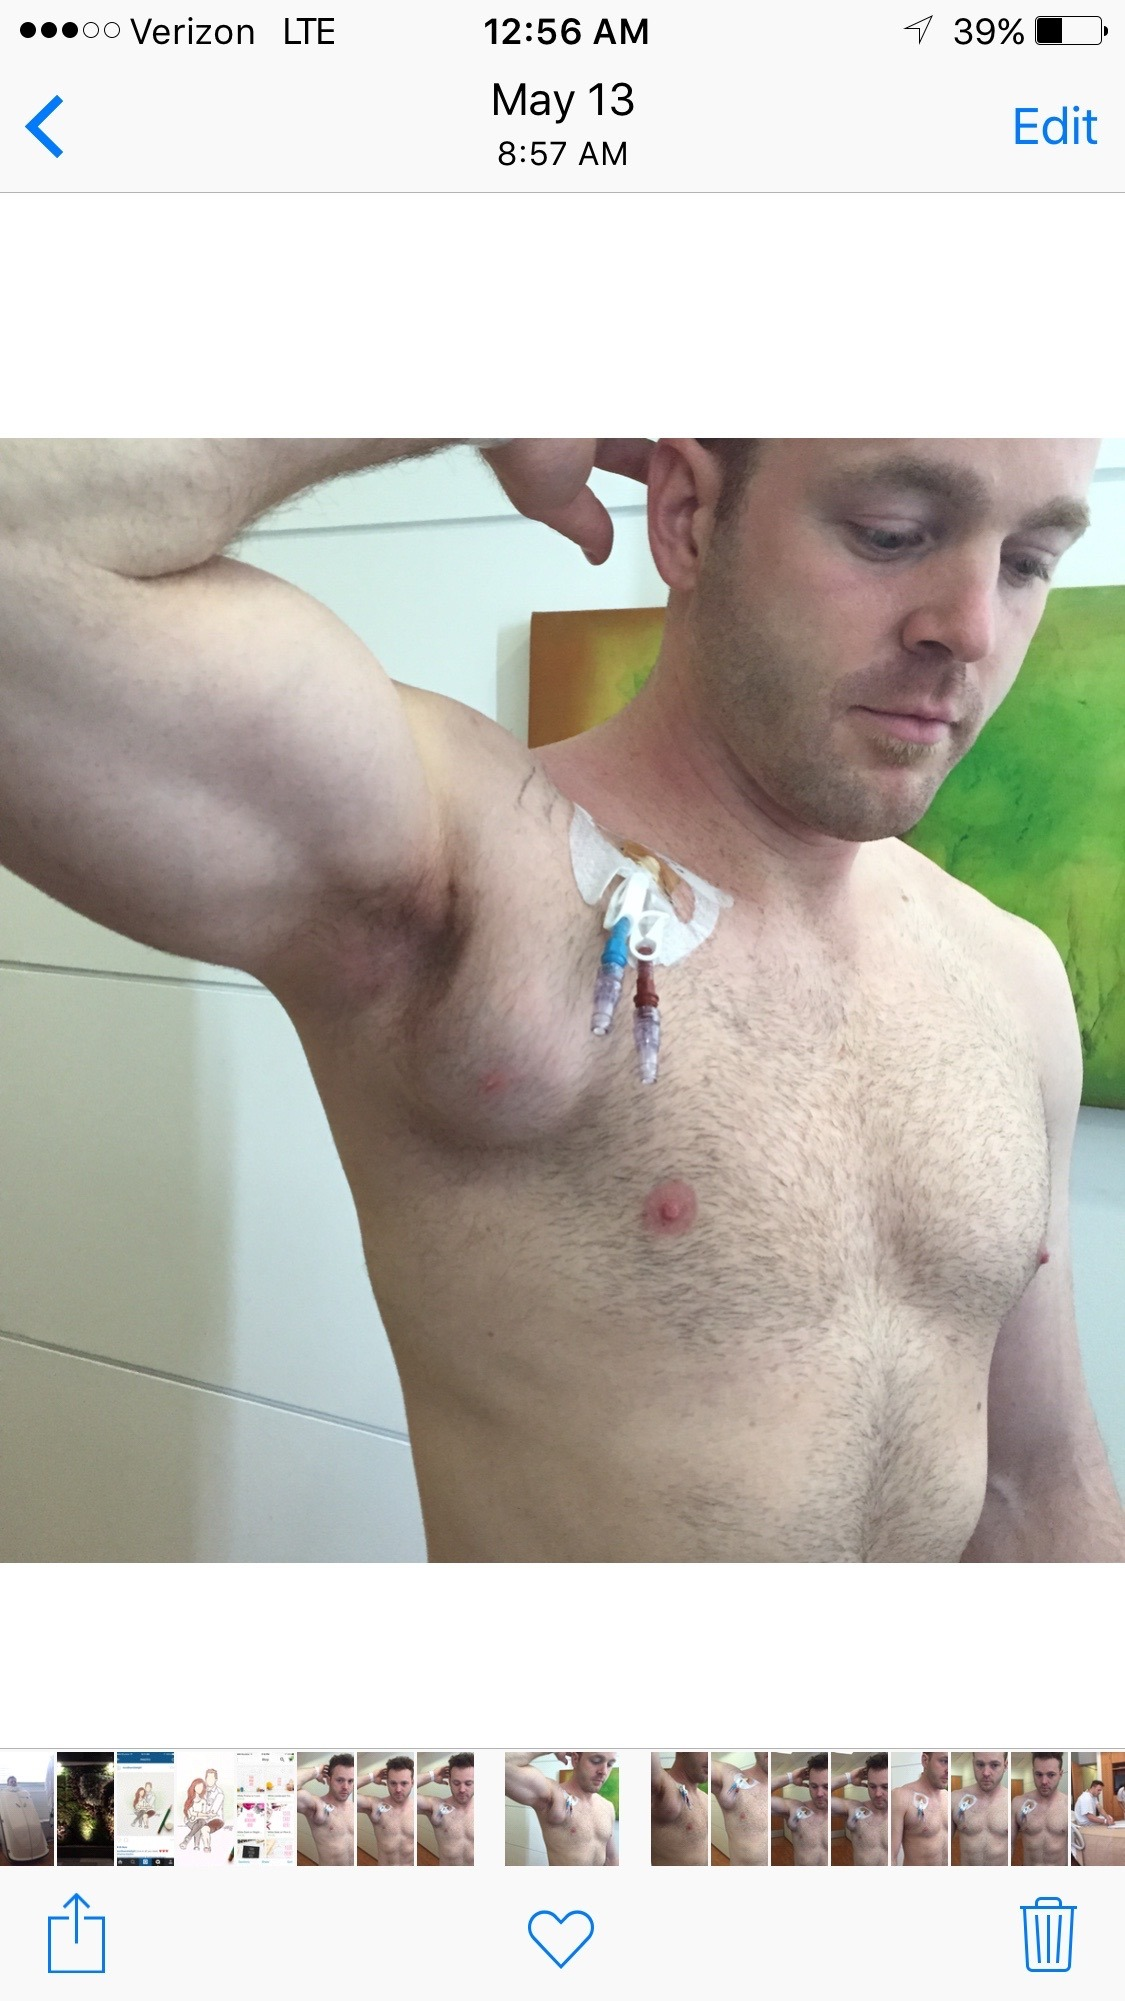 the mass with kneedle_biopsy marks in the center and the catheter out of his chest